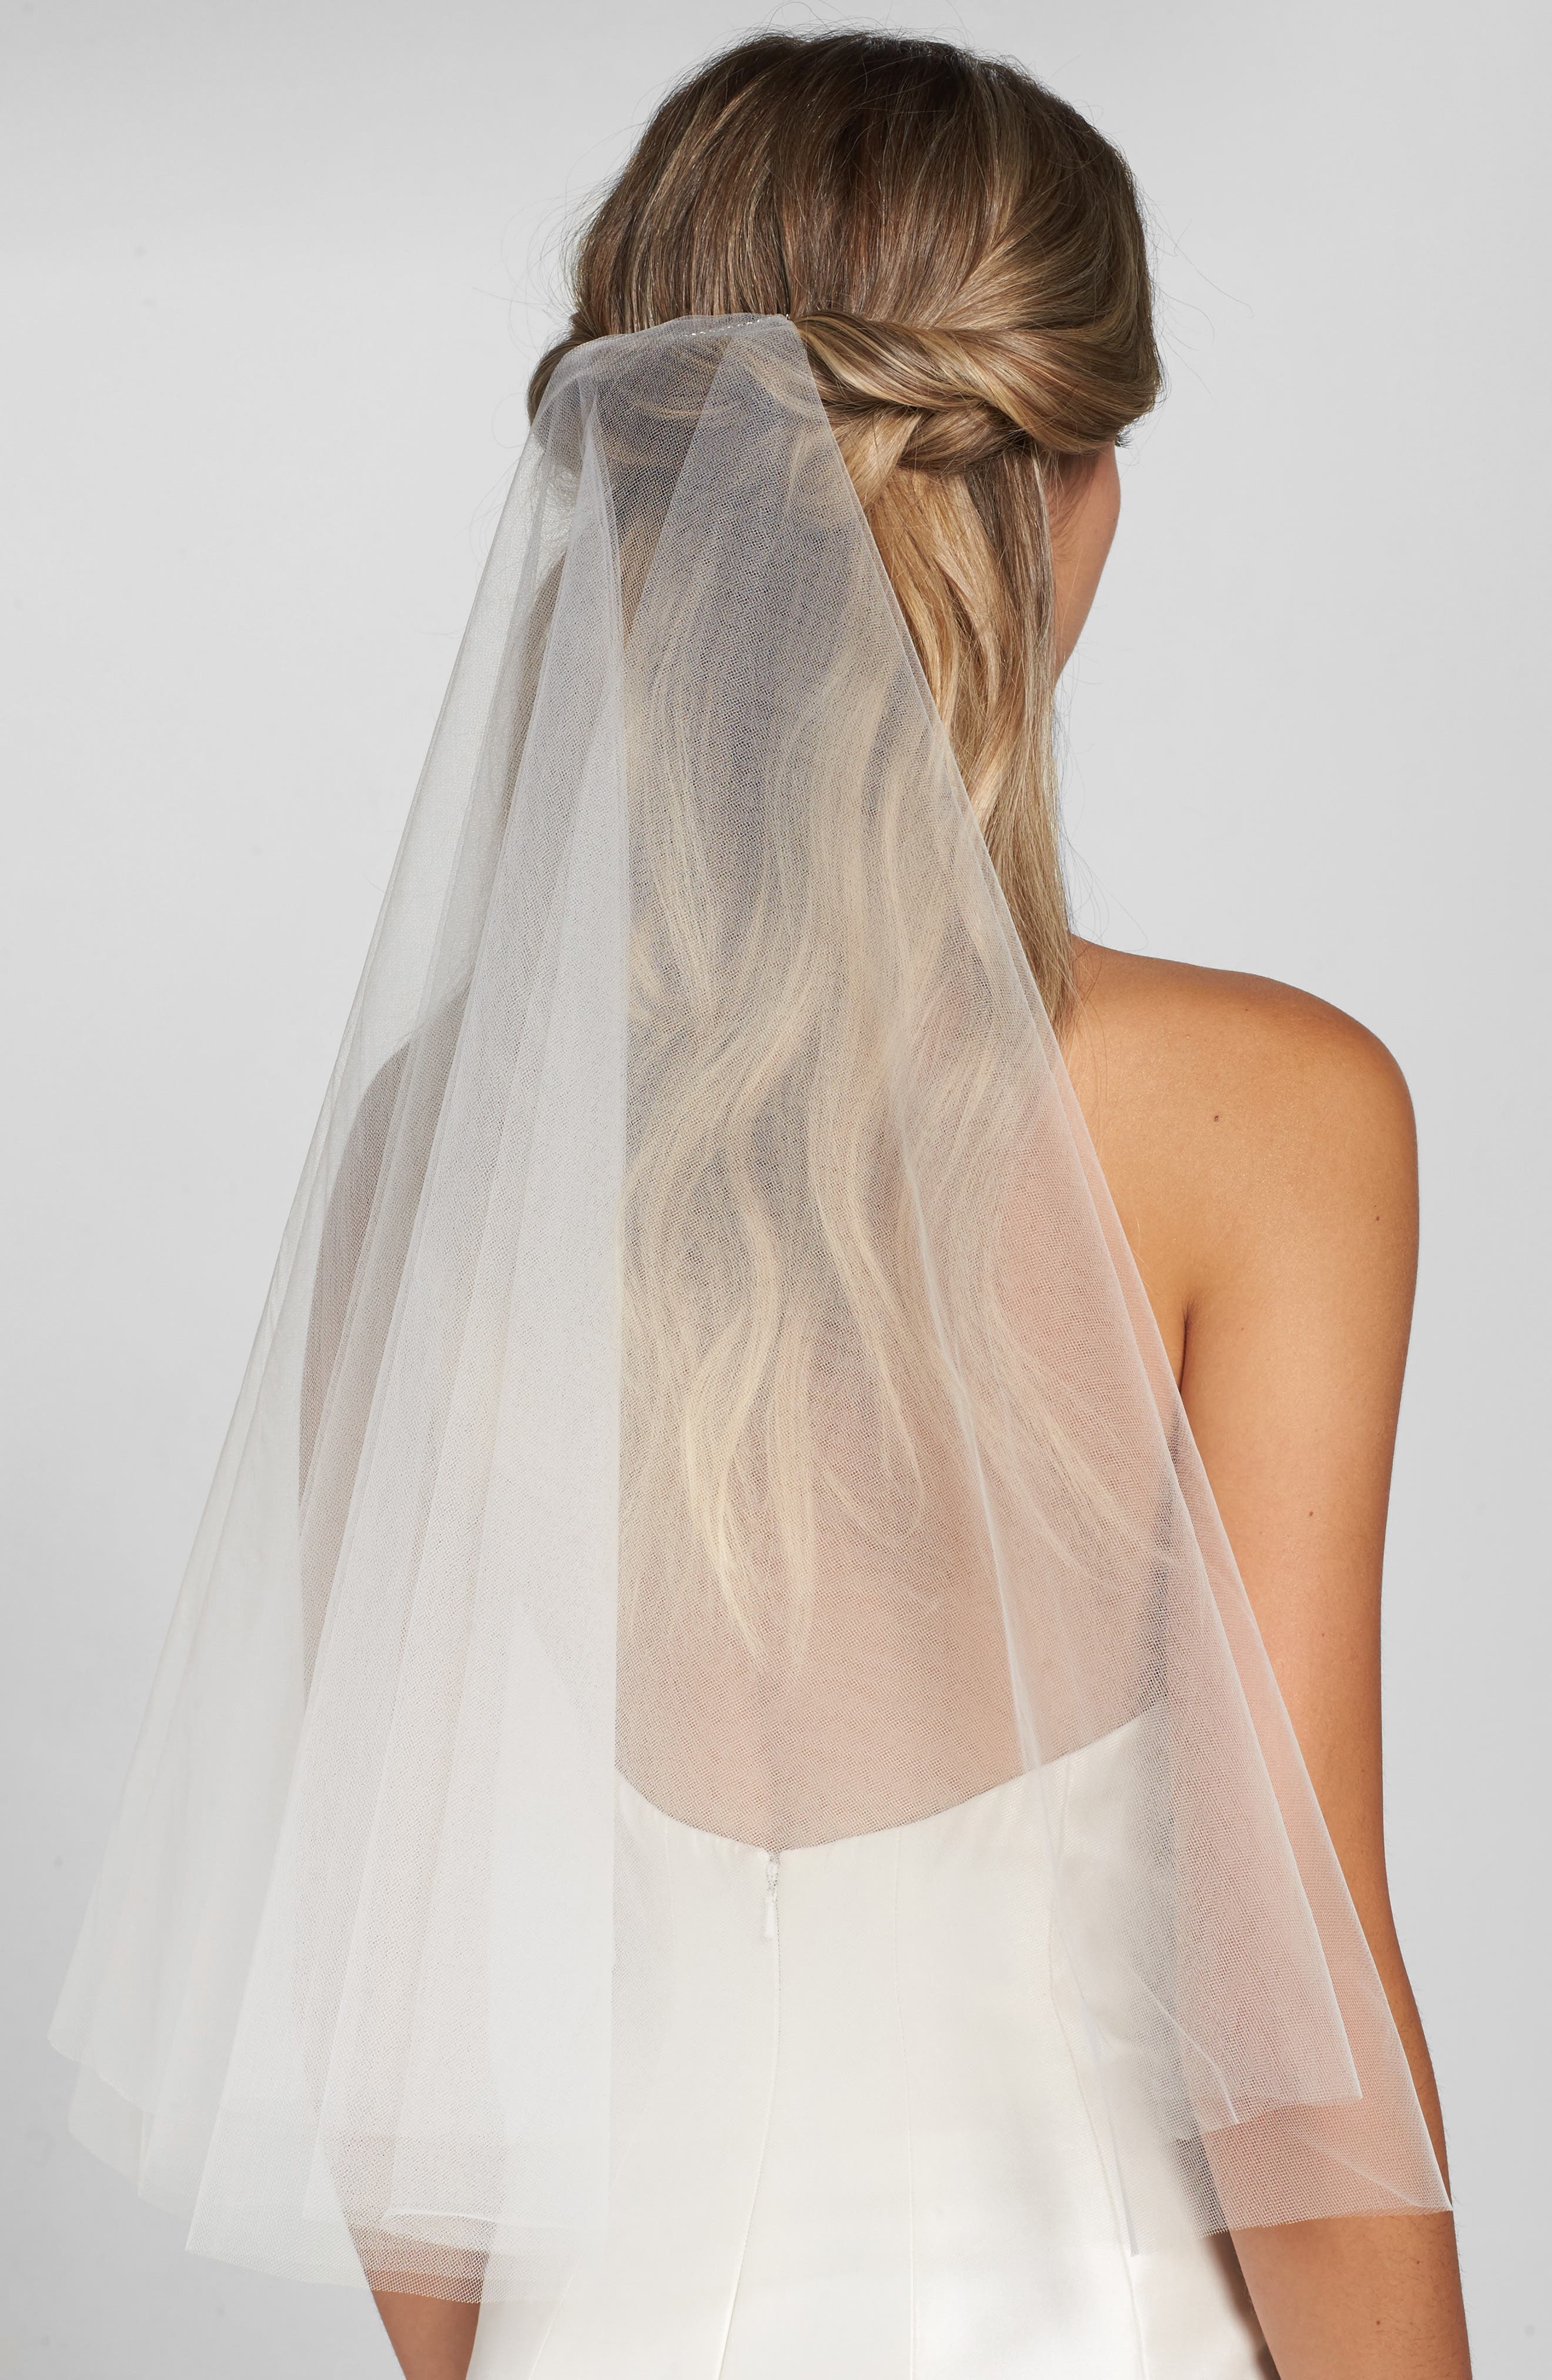 'Madeline' Two Tier Circle Veil,                         Main,                         color, Ivory